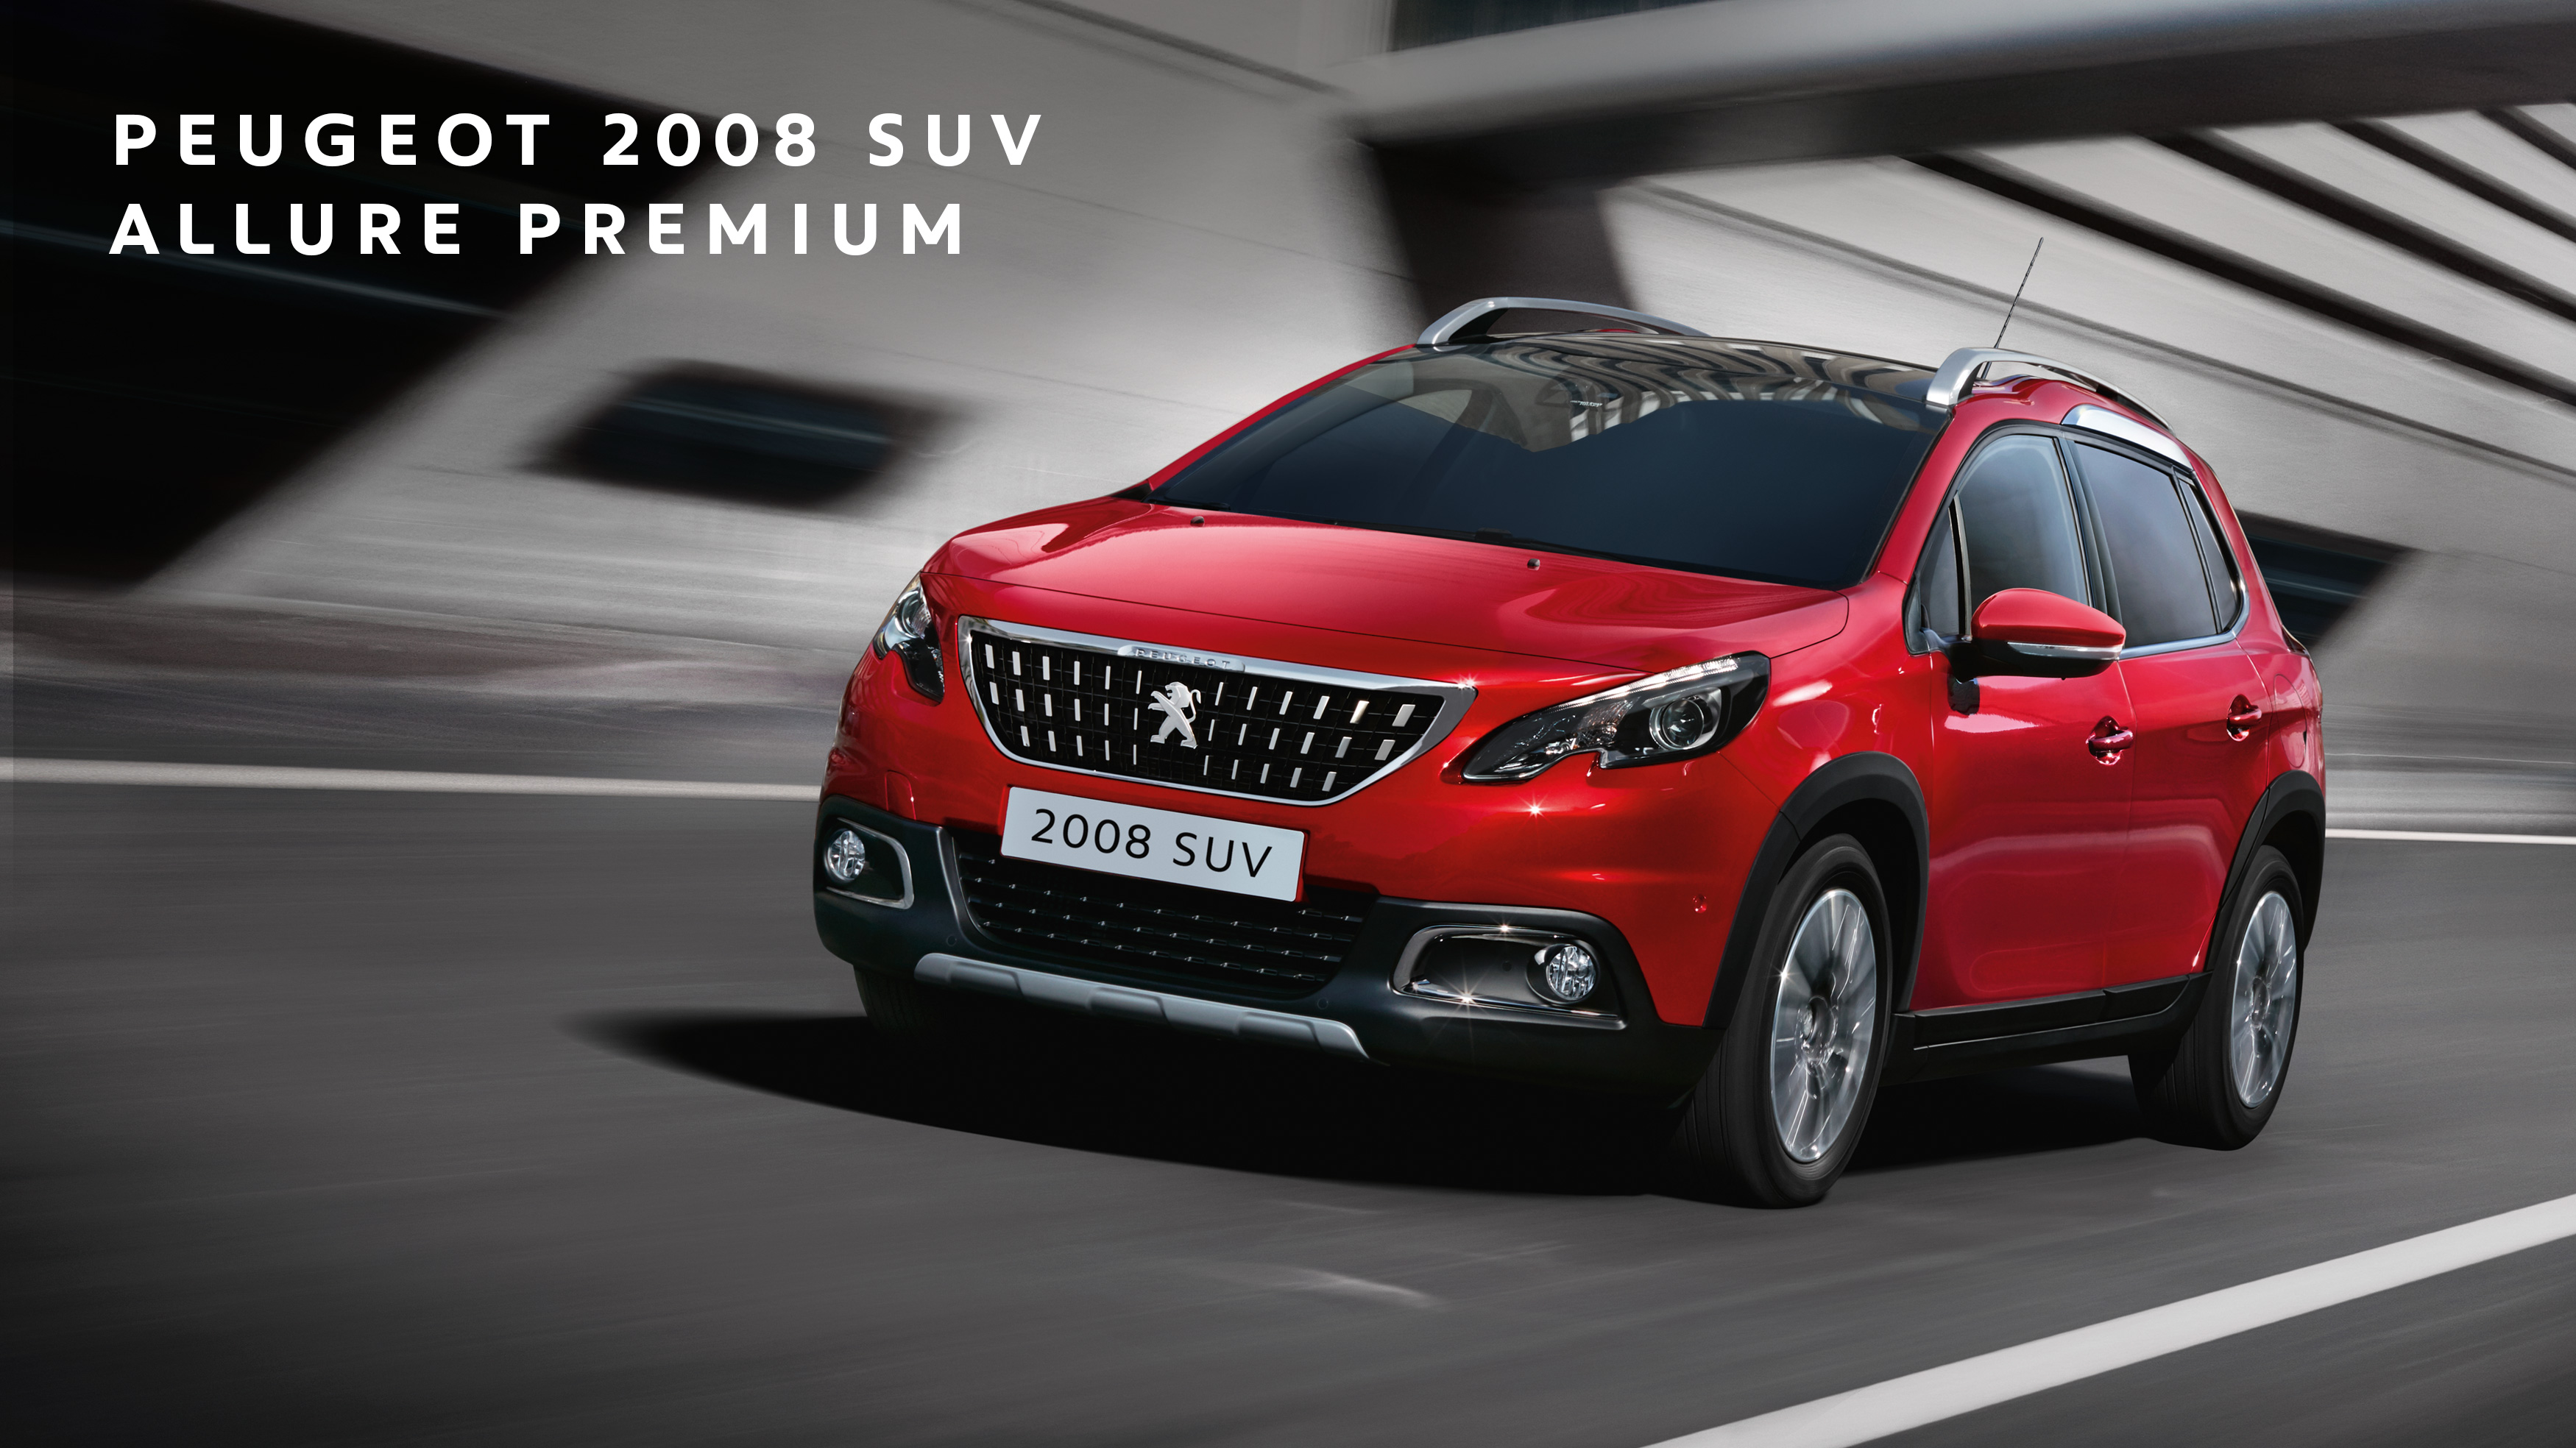 New Peugeot 2008 SUV for £209 per Month